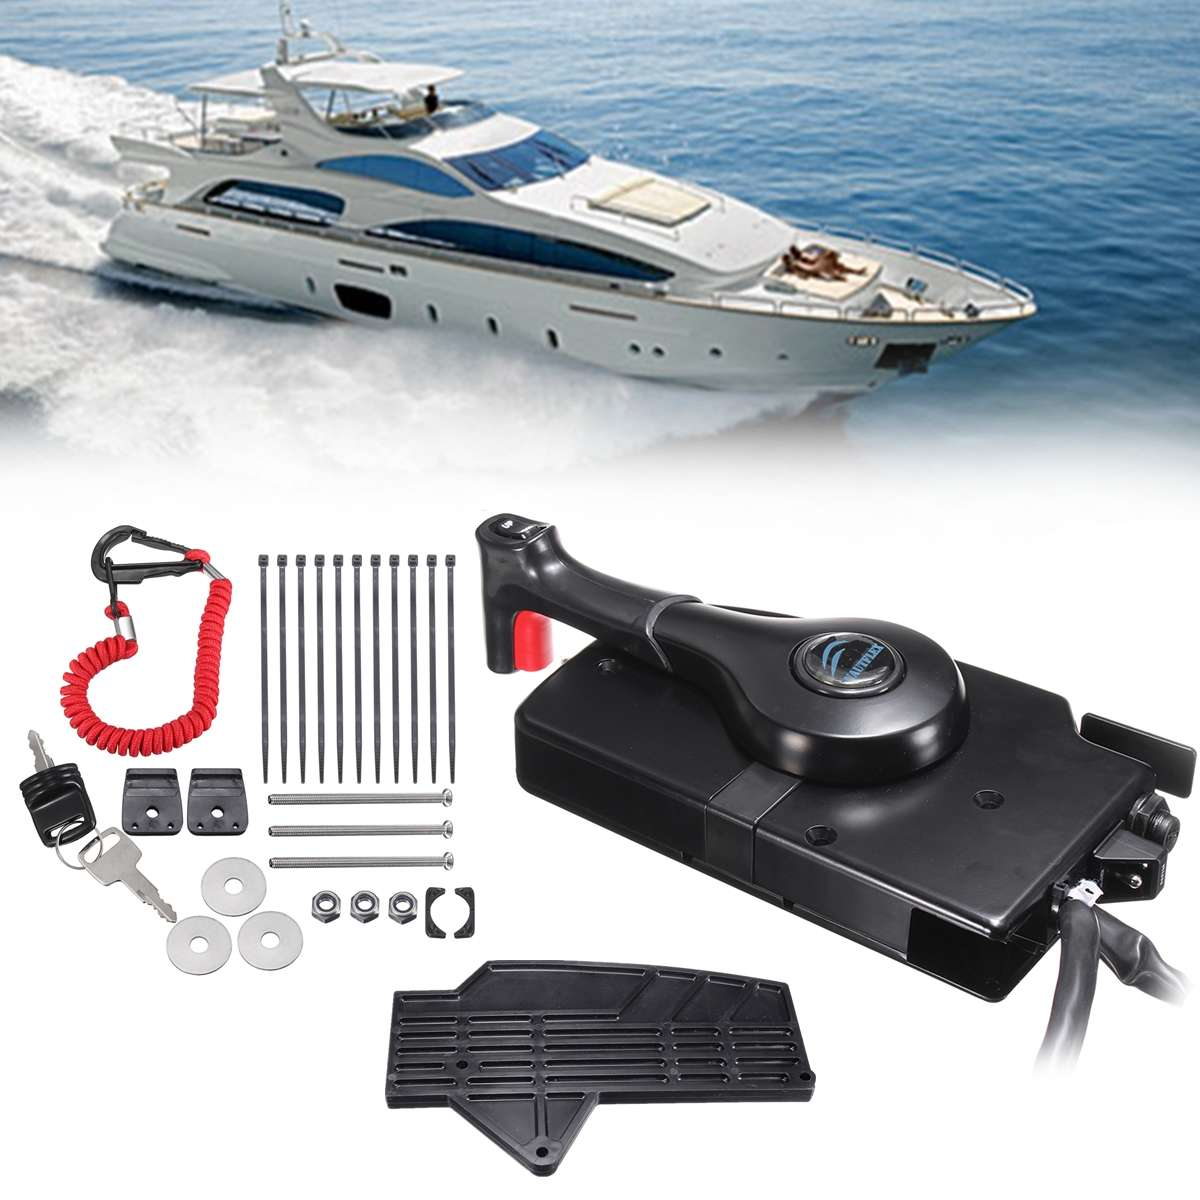 Outboard Engine Side Mount With 14 Pin Cable Boat Remote Control Box for Mercury Include Forward/reverse Lever Up/Down switch